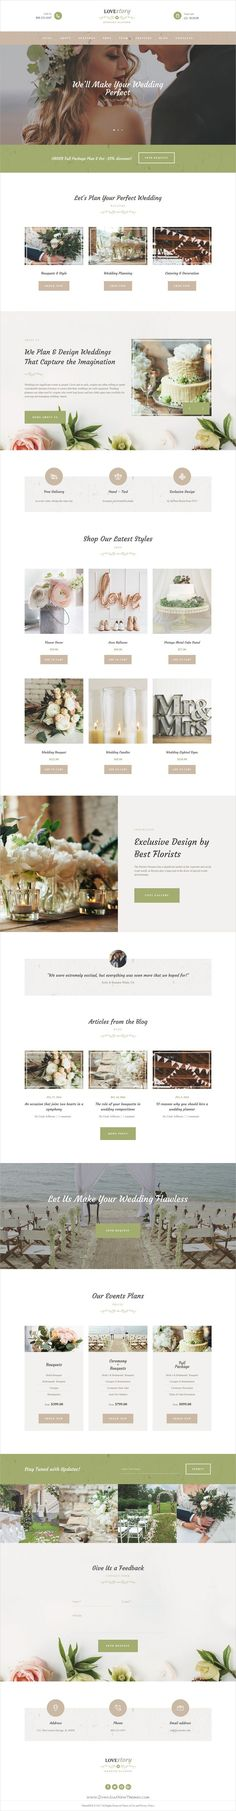 Love story is an elegant responsive #WordPress theme for #wedding invitation, wedding #planner or planning agencies website with a fashionable and tender look download now➩ https://themeforest.net/item/love-story-wedding-and-event-planner-site-template/19766609?ref=Datasata